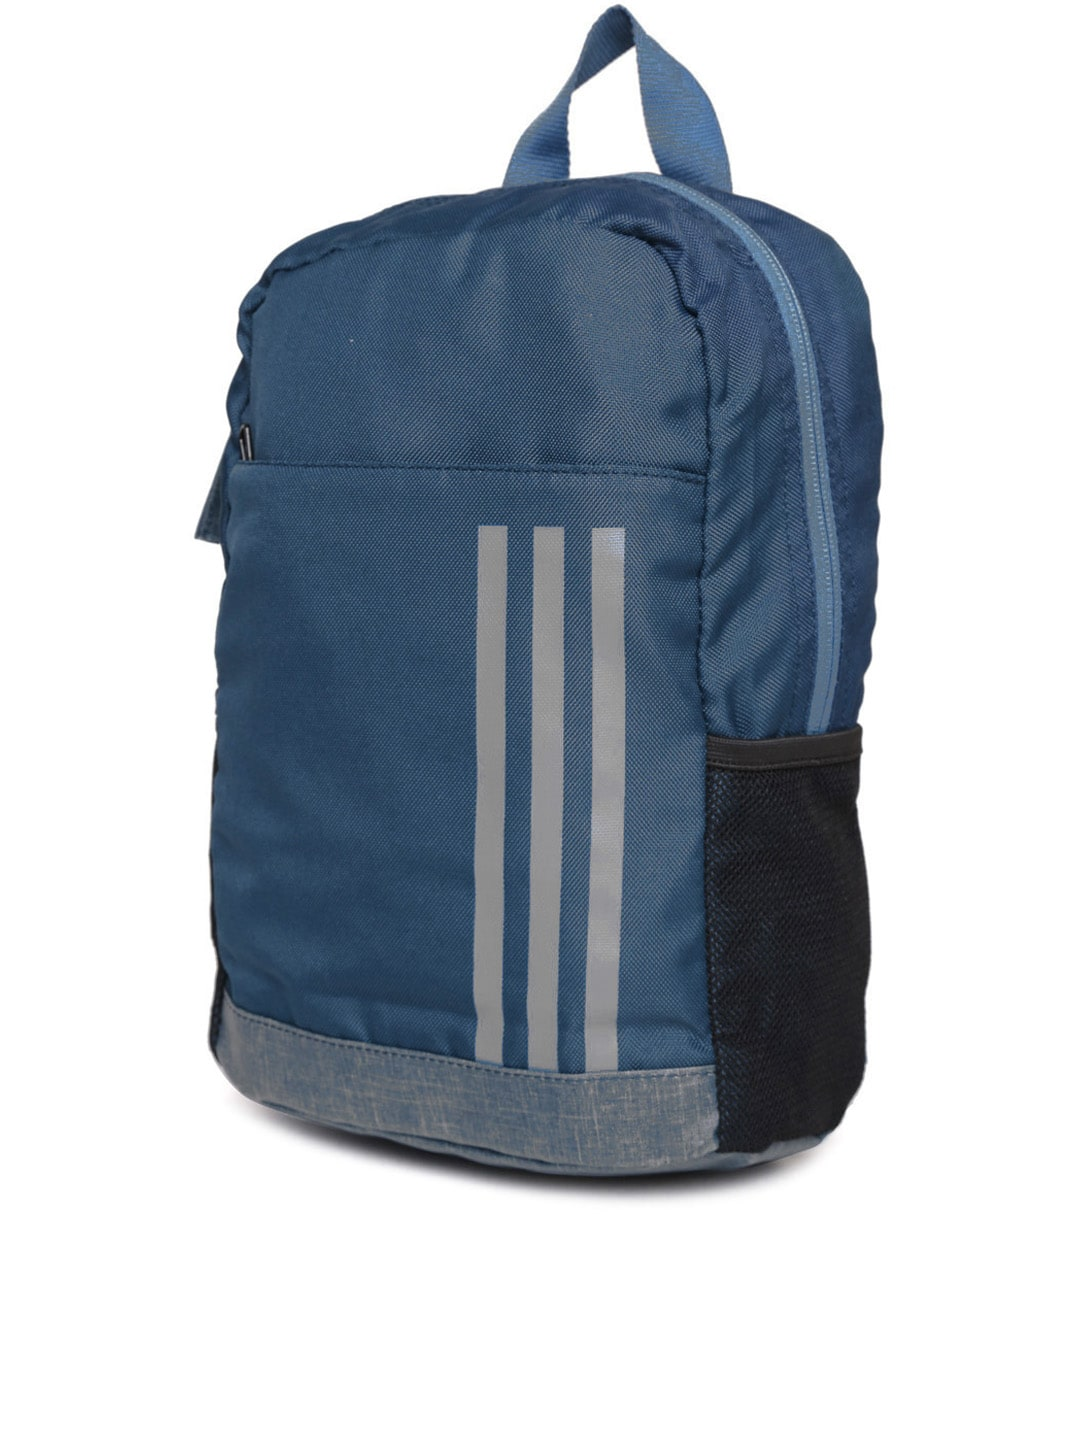 78b57fbb45 Buy adidas school bags for girls > OFF52% Discounted